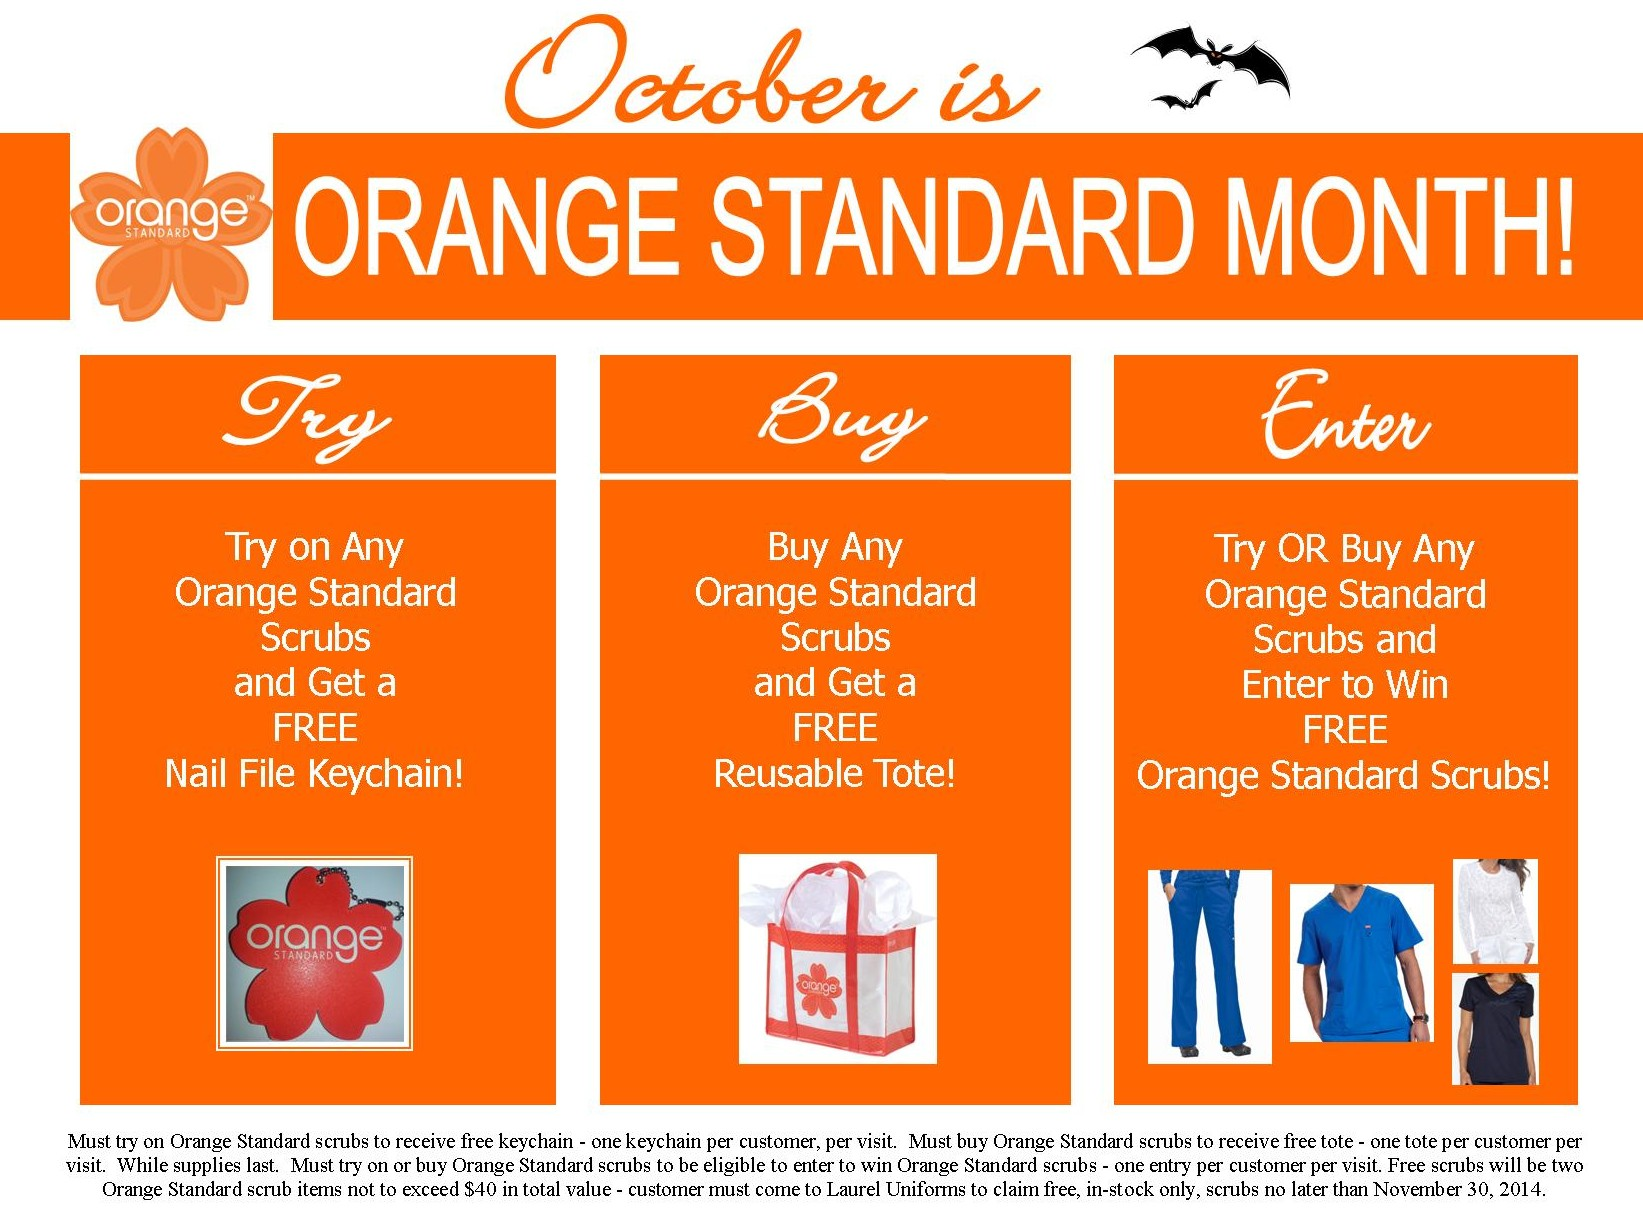 October is Orange Standard Month